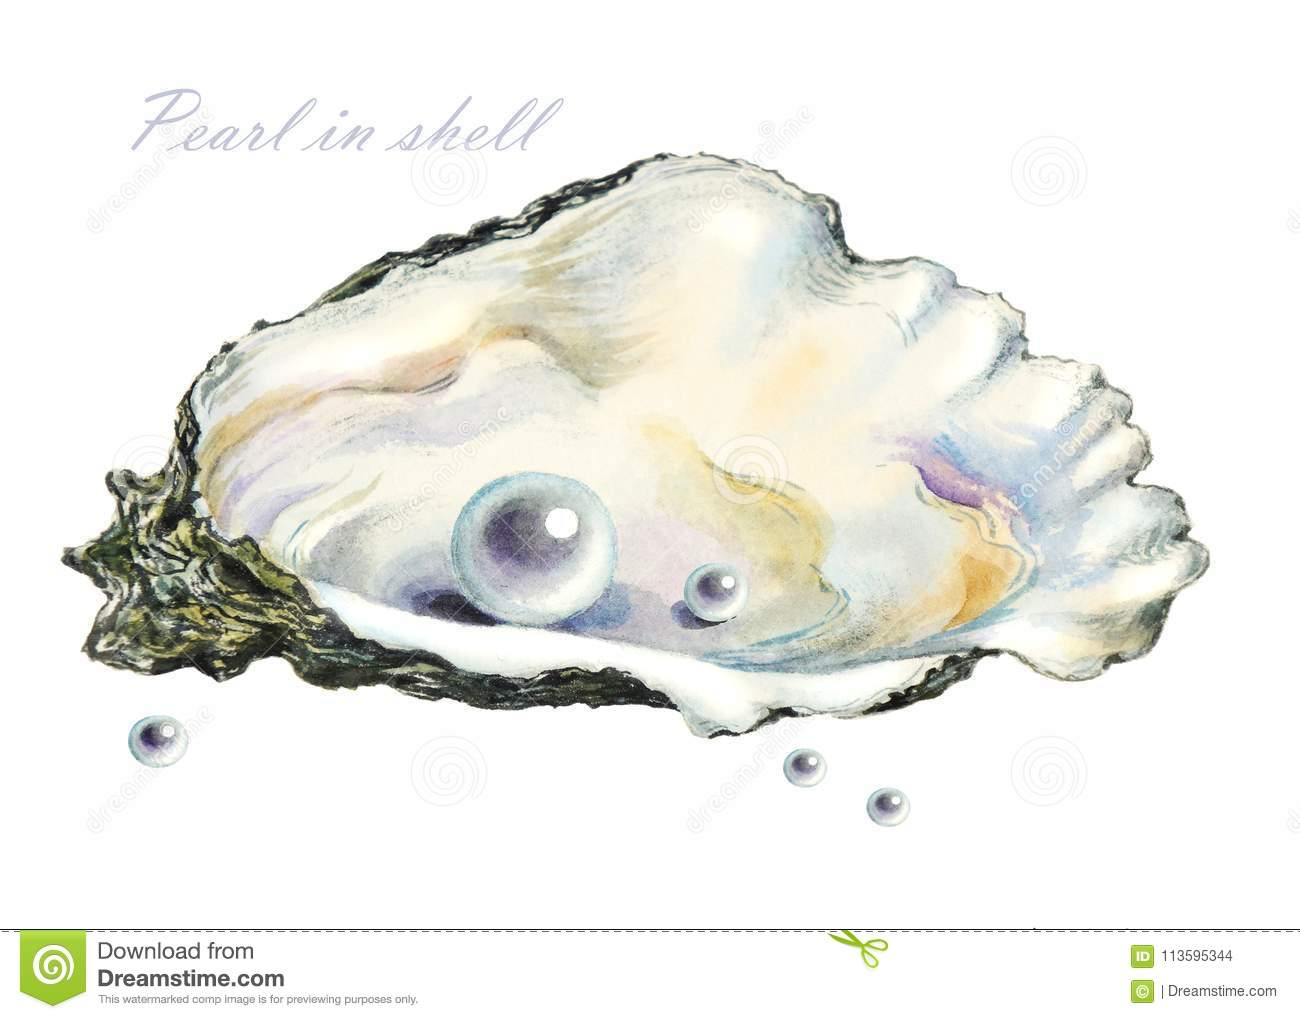 Several Of The Pearls In The Pearl Shell Stock Illustration